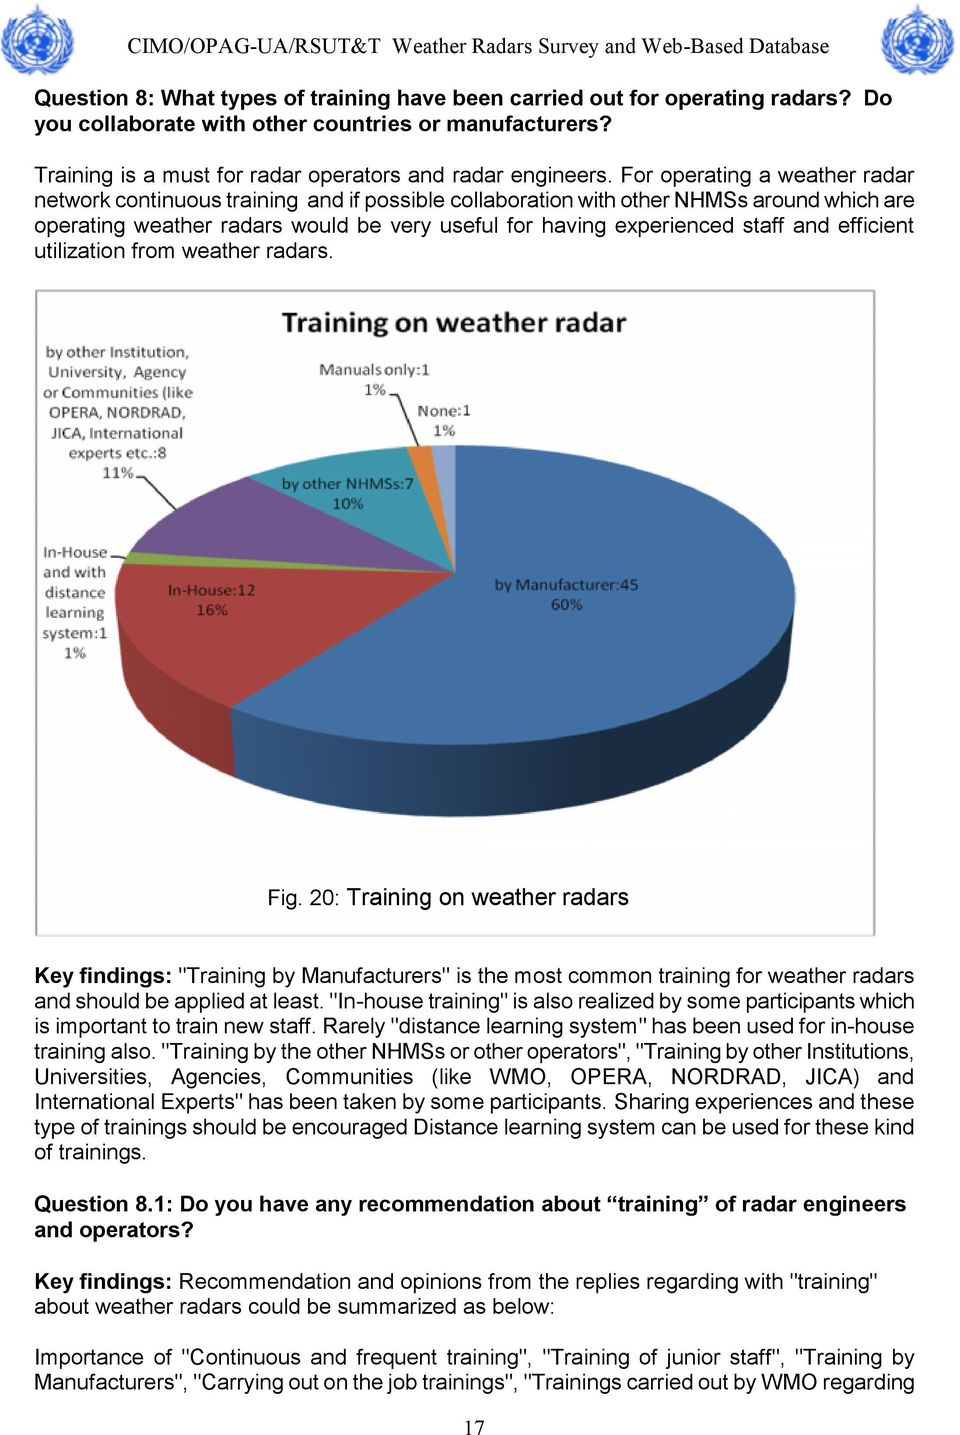 For operating a weather radar network continuous training and if possible collaboration with other NHMSs around which are operating weather radars would be very useful for having experienced staff